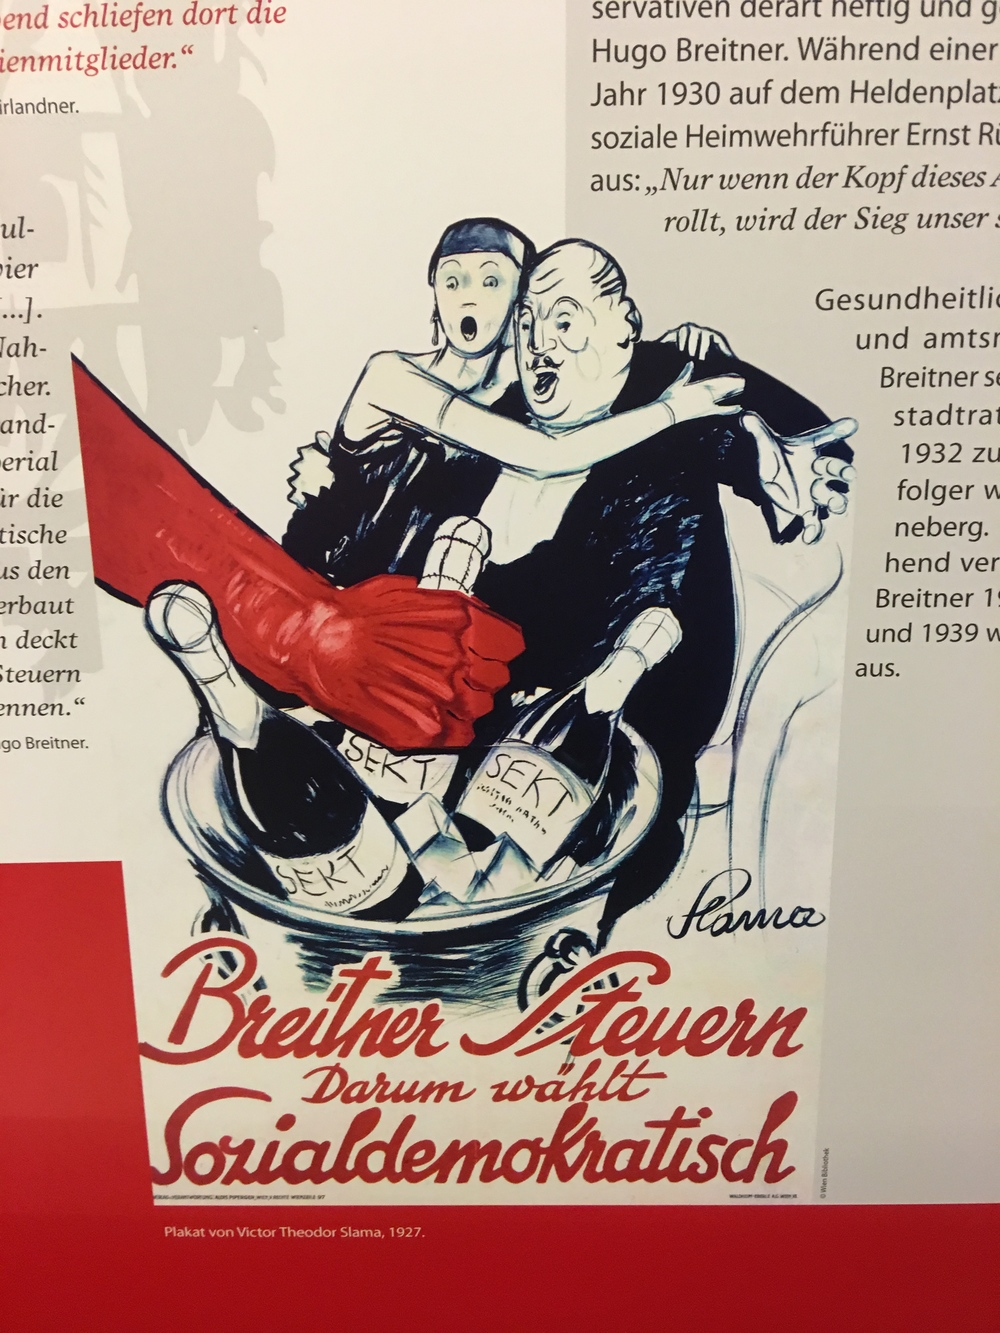 Election Poster for Breitner